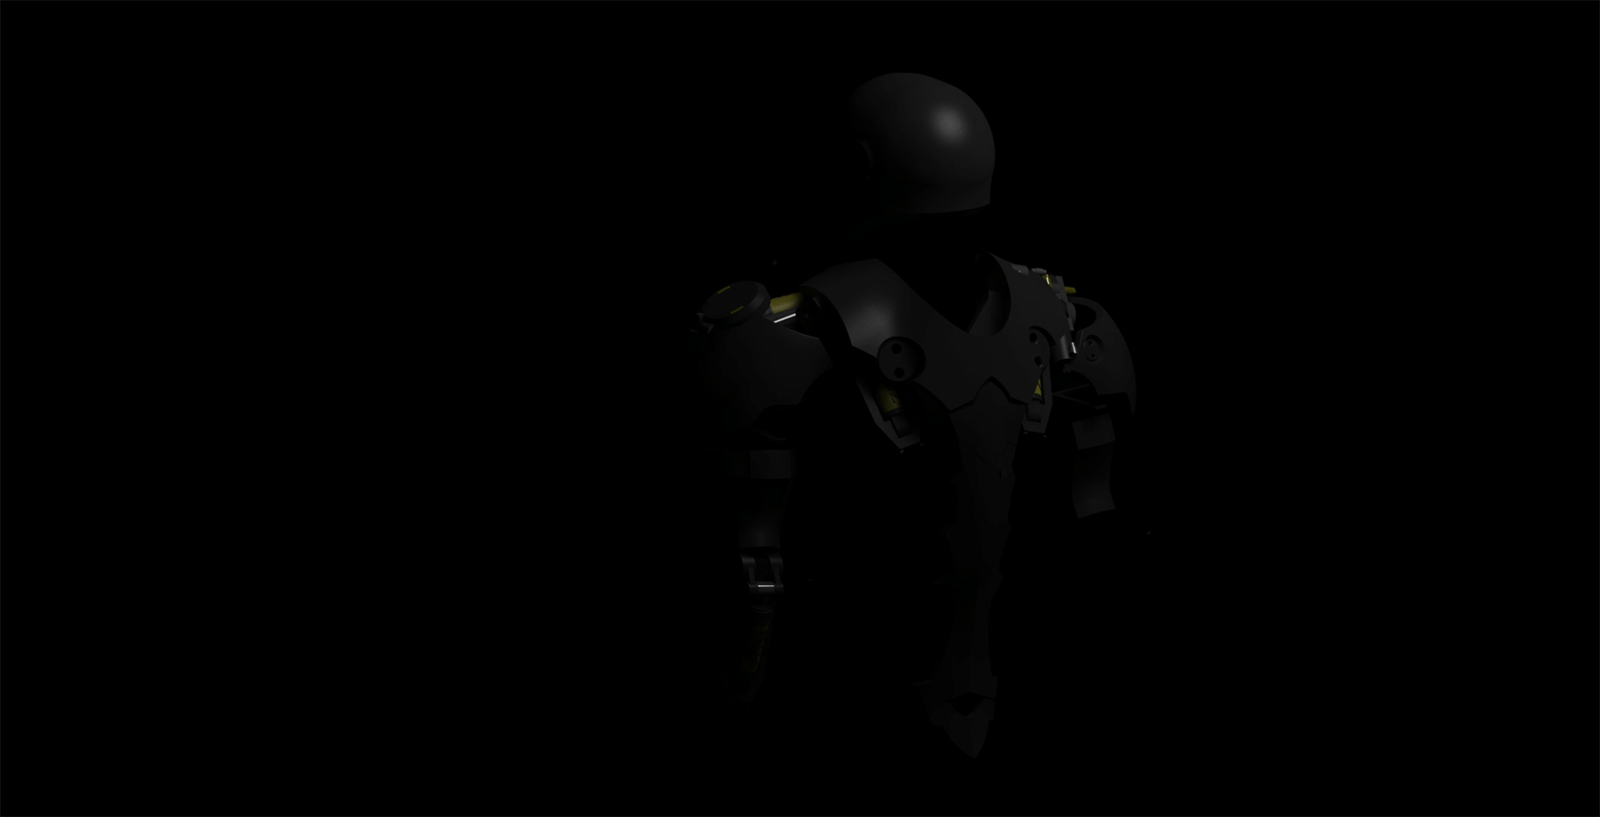 Warman - a cutting-edge military exoskeleton